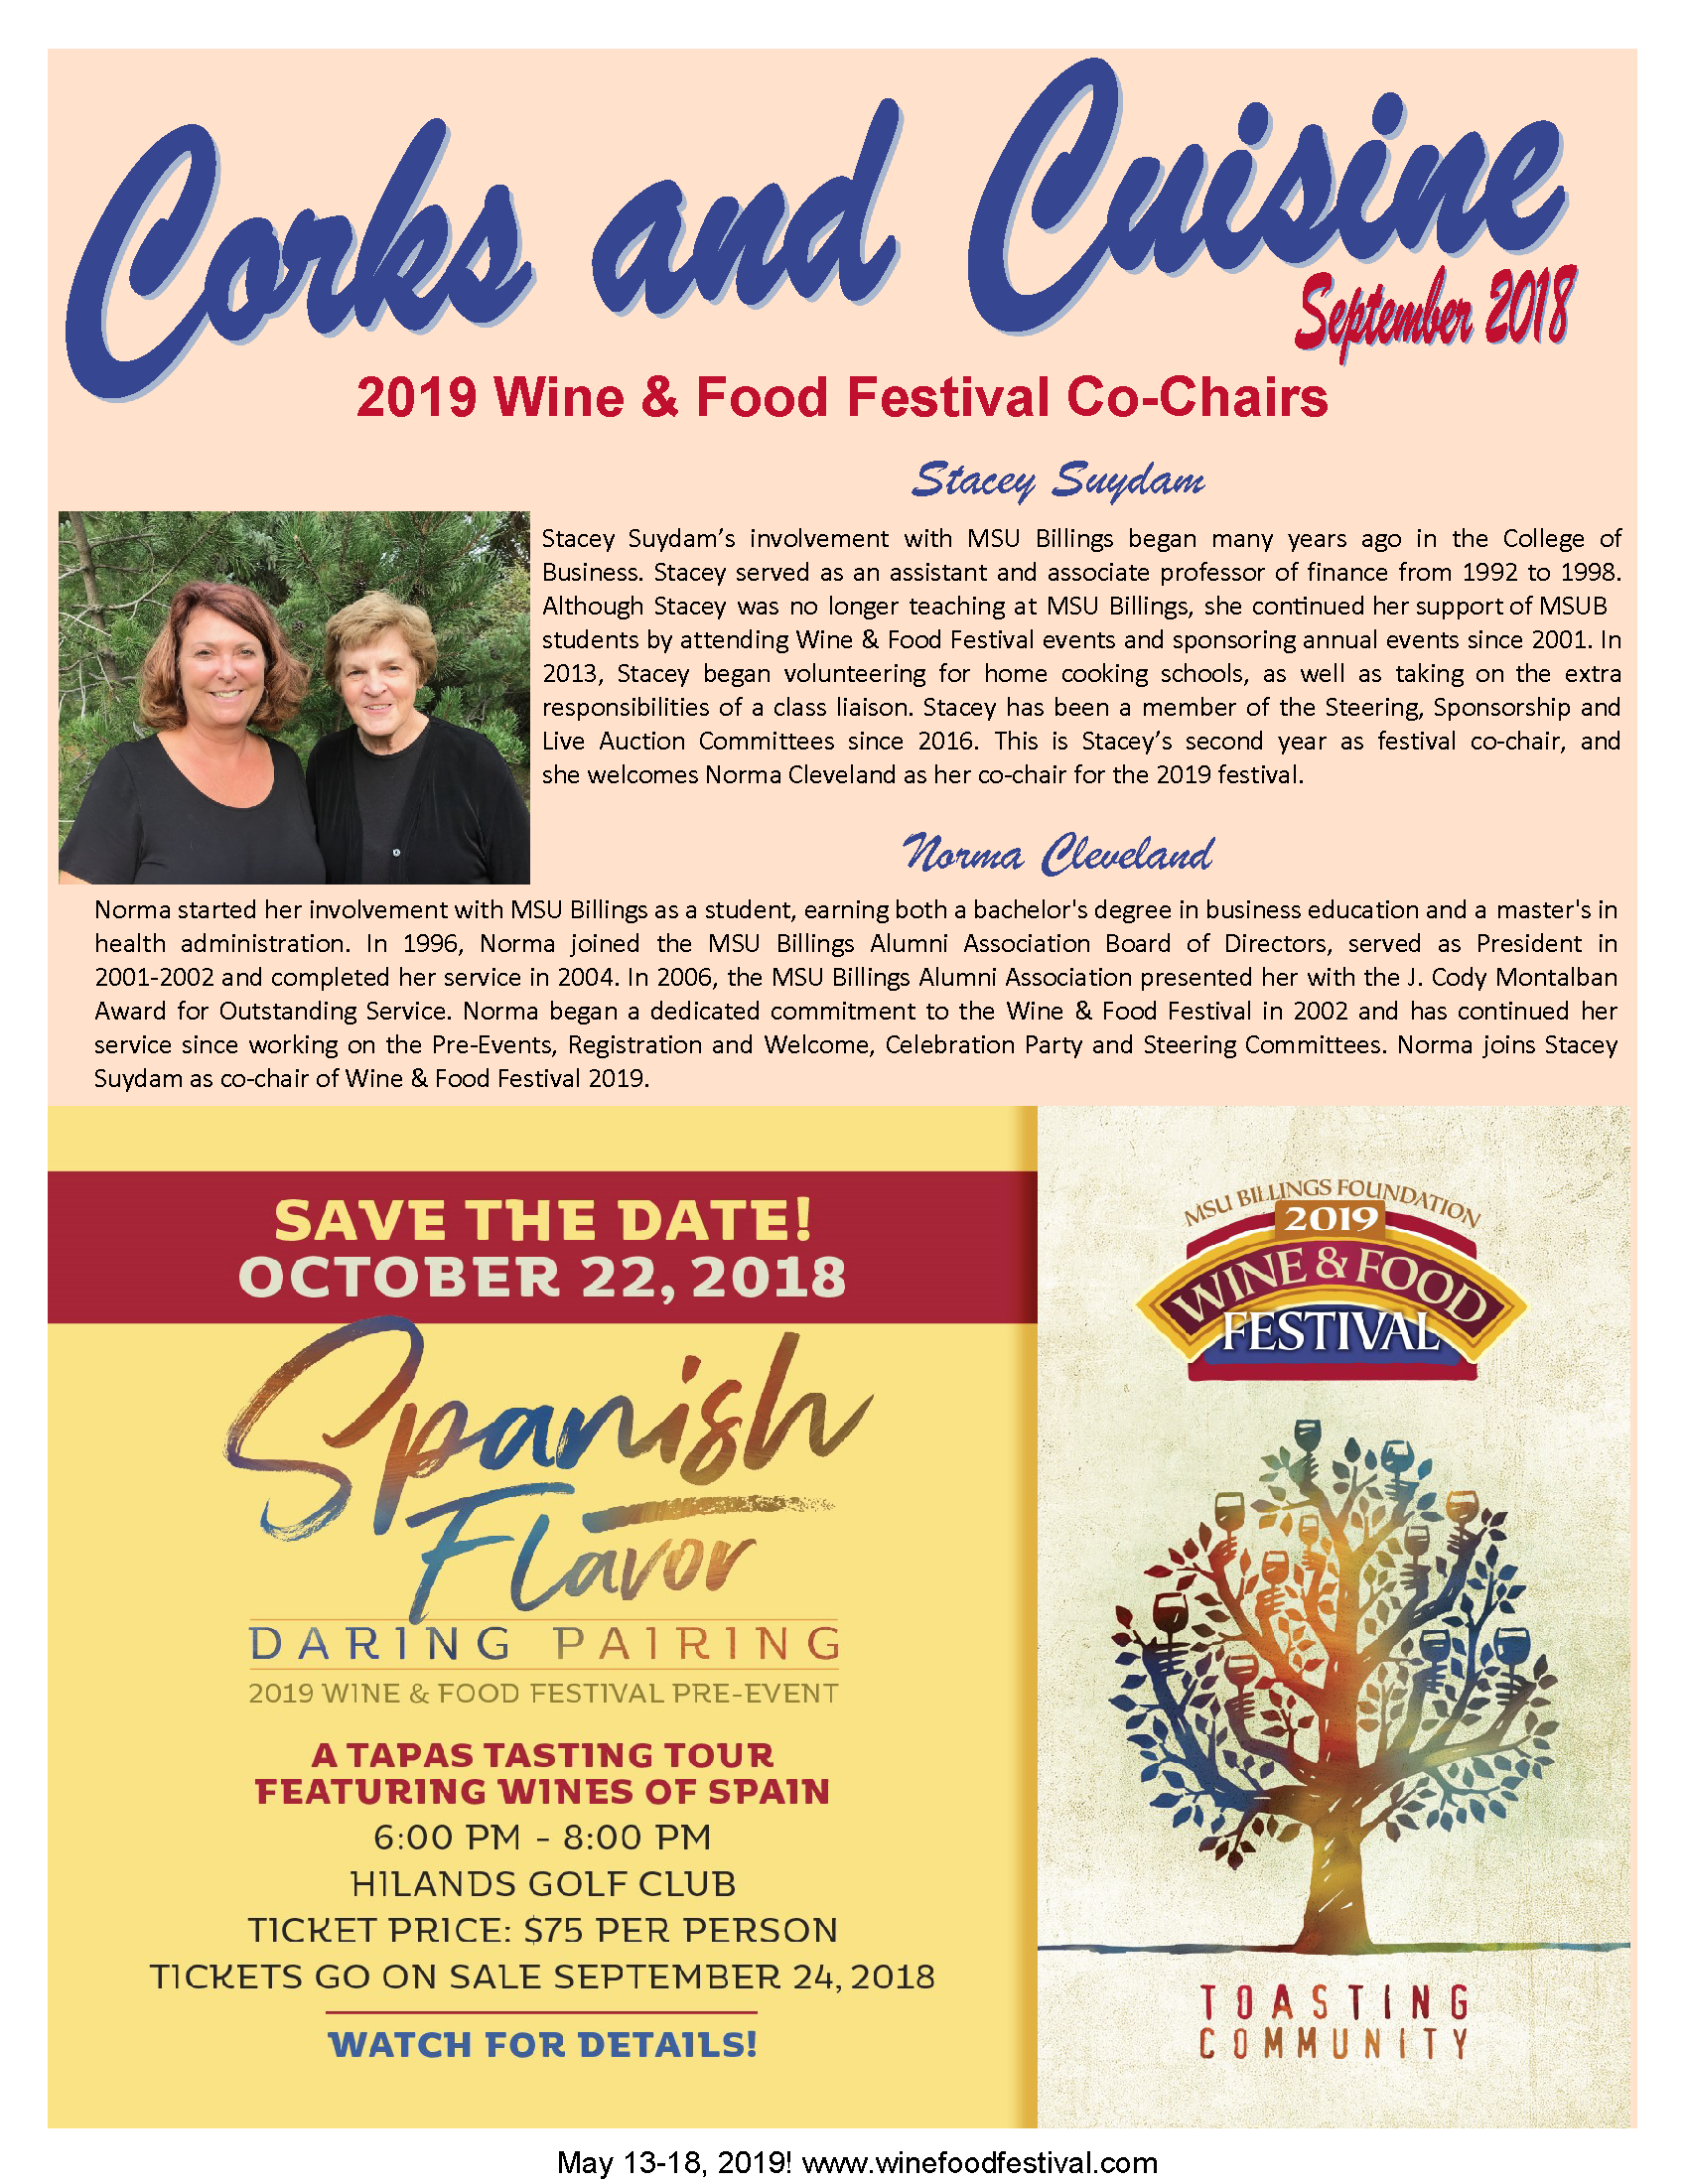 Corks and Cuisine Sept 18